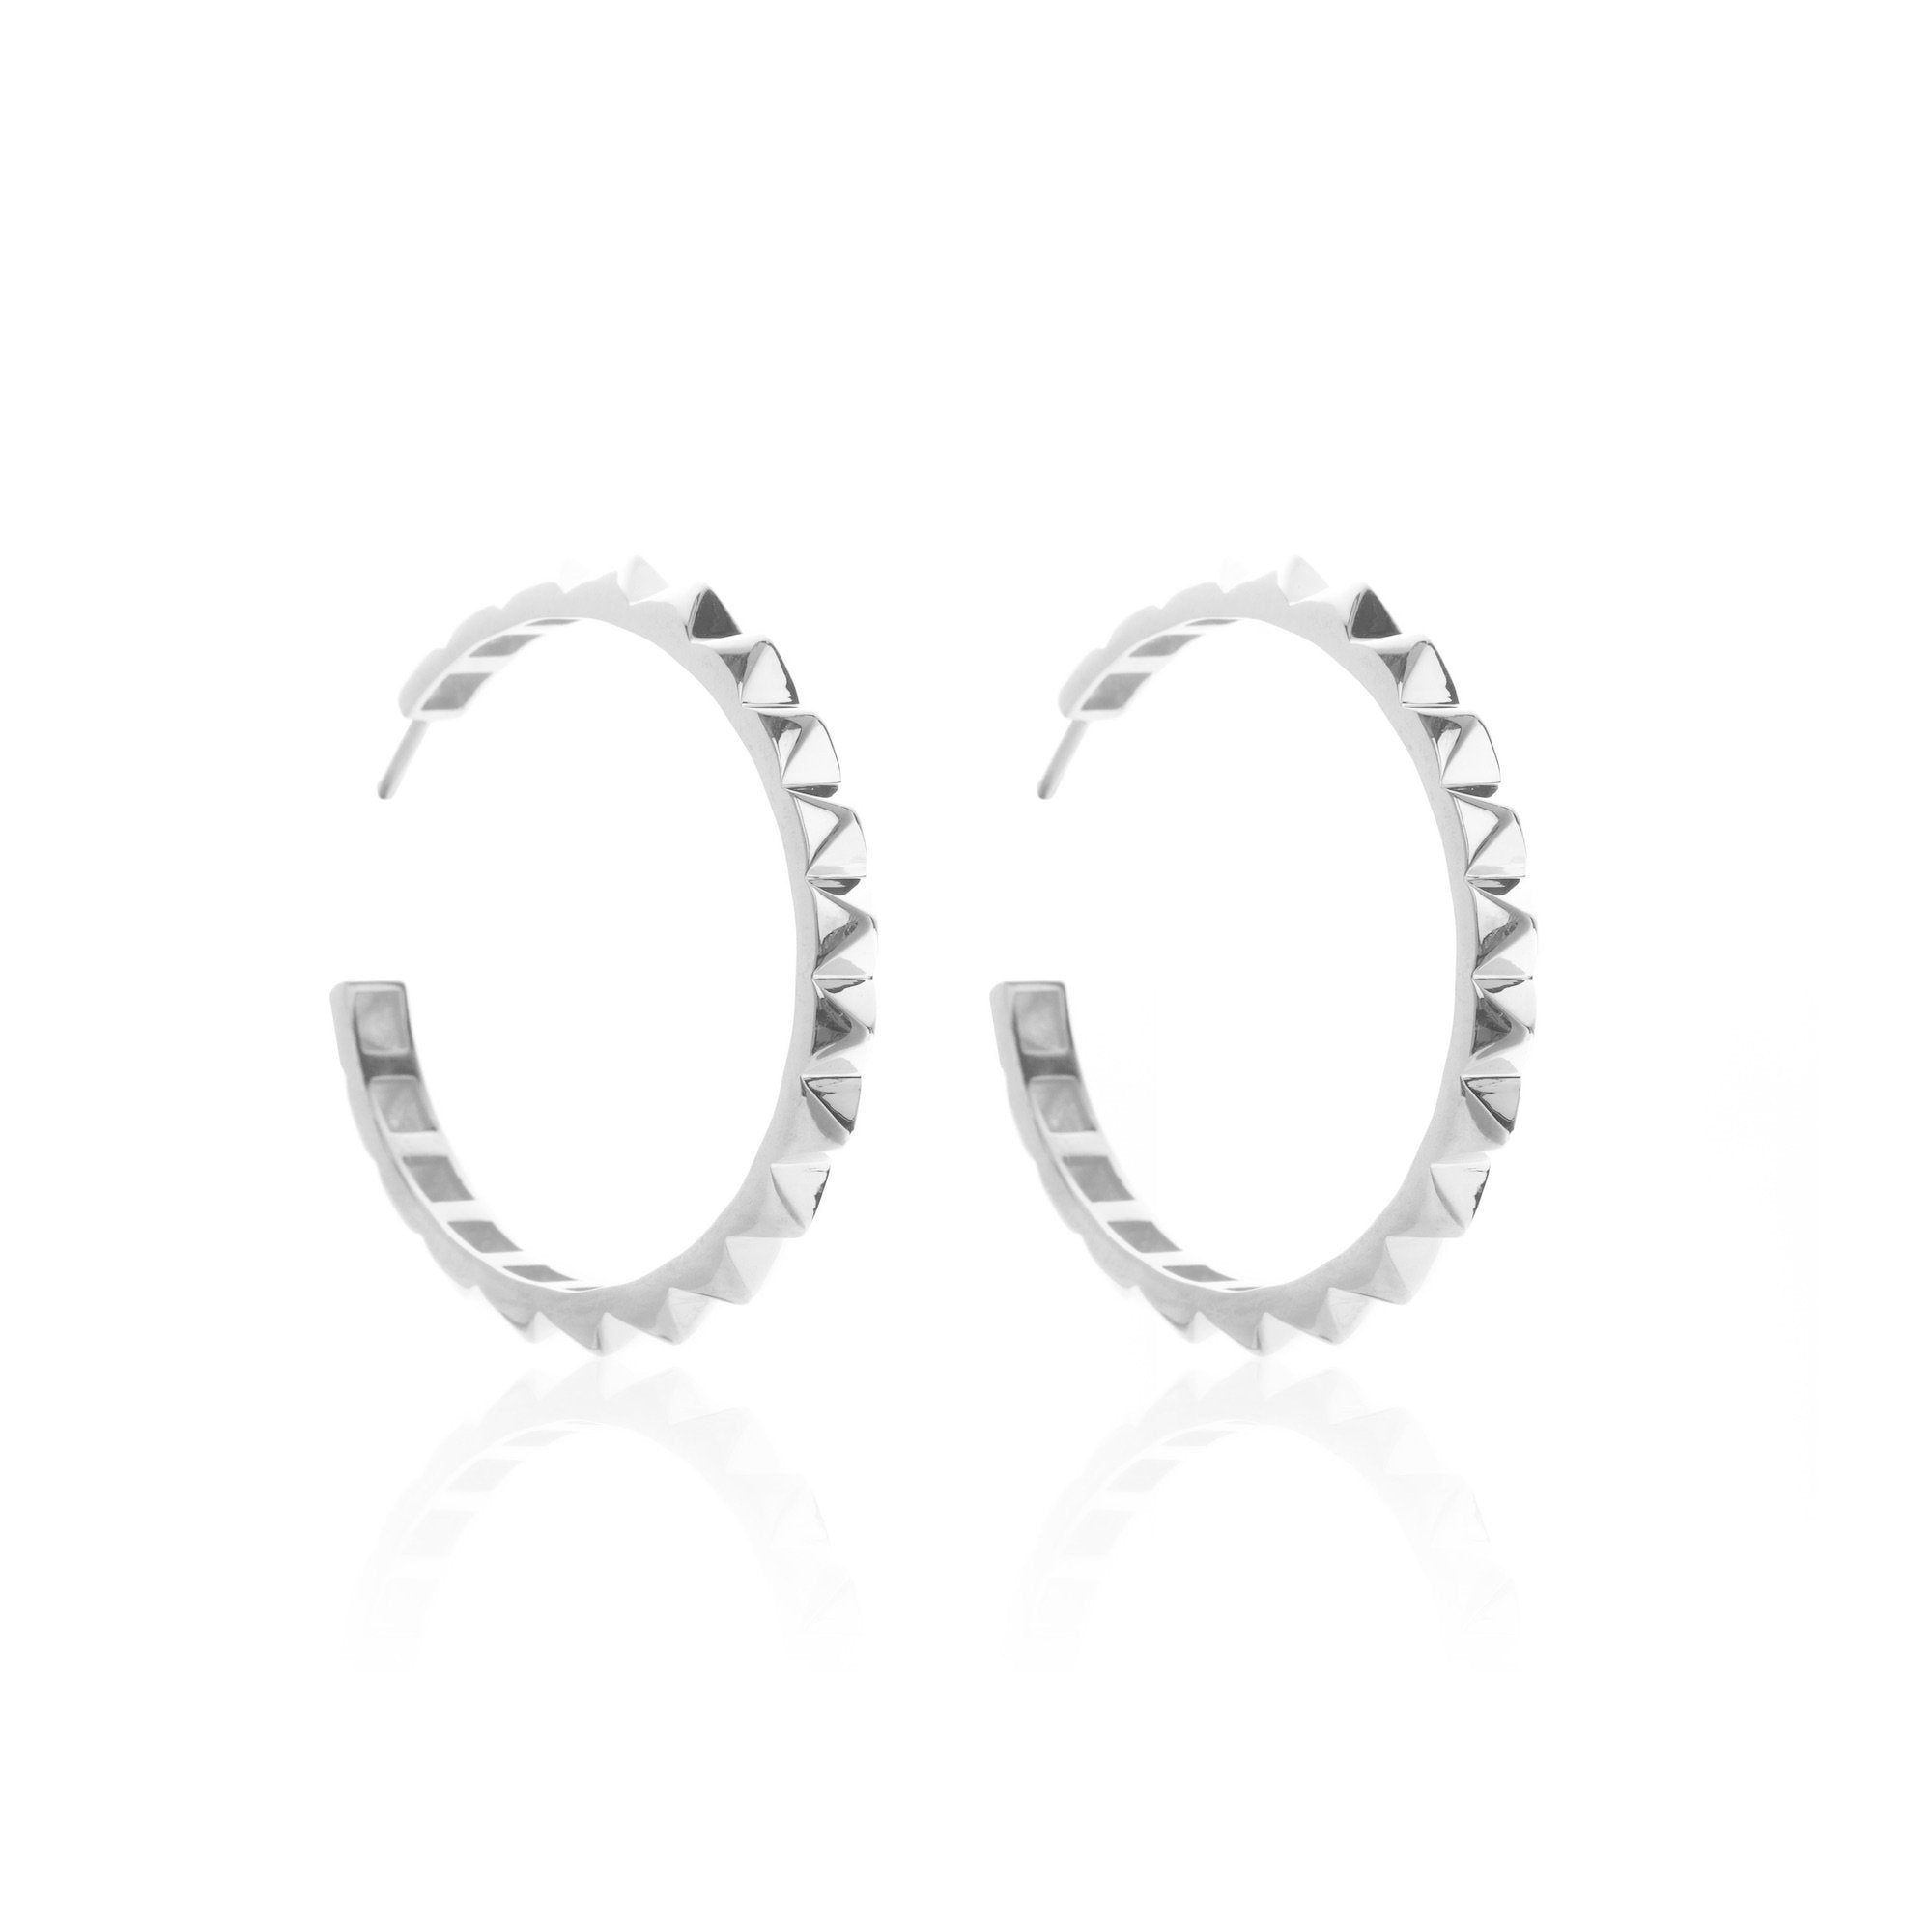 Silk & Steel The Perfect Party - Silver Hoop Earrings